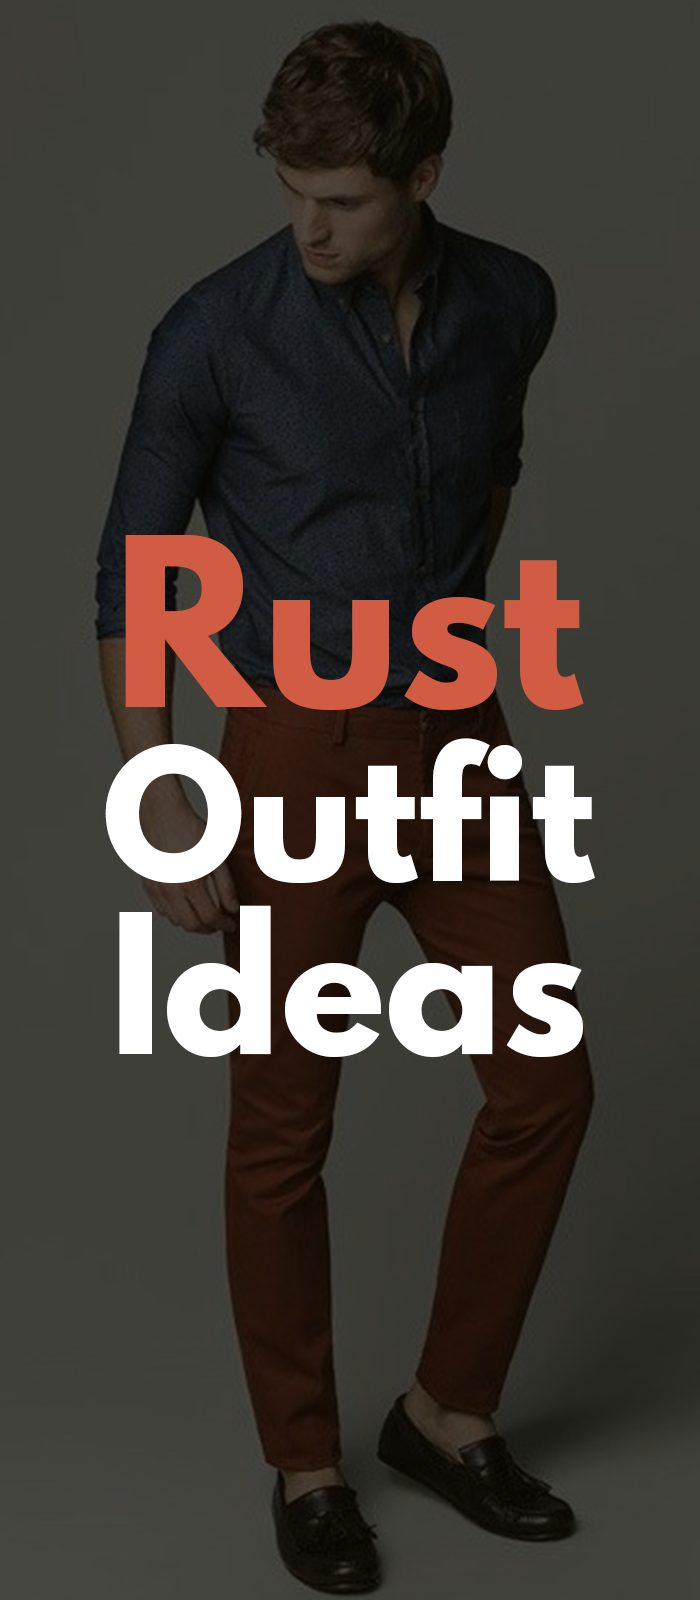 RUST OUTFIT IDEAS